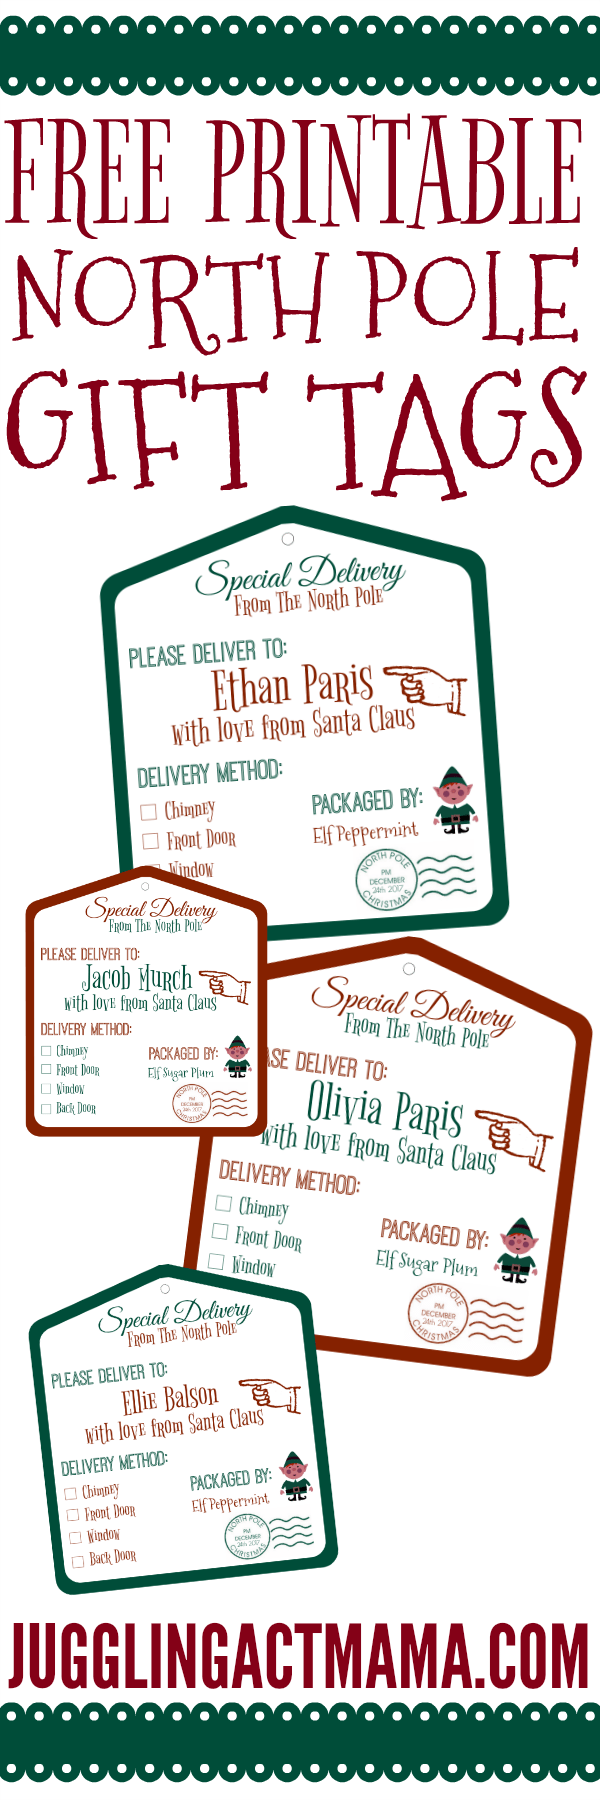 North Pole Gift tags - free printable straight from Santa's workshop